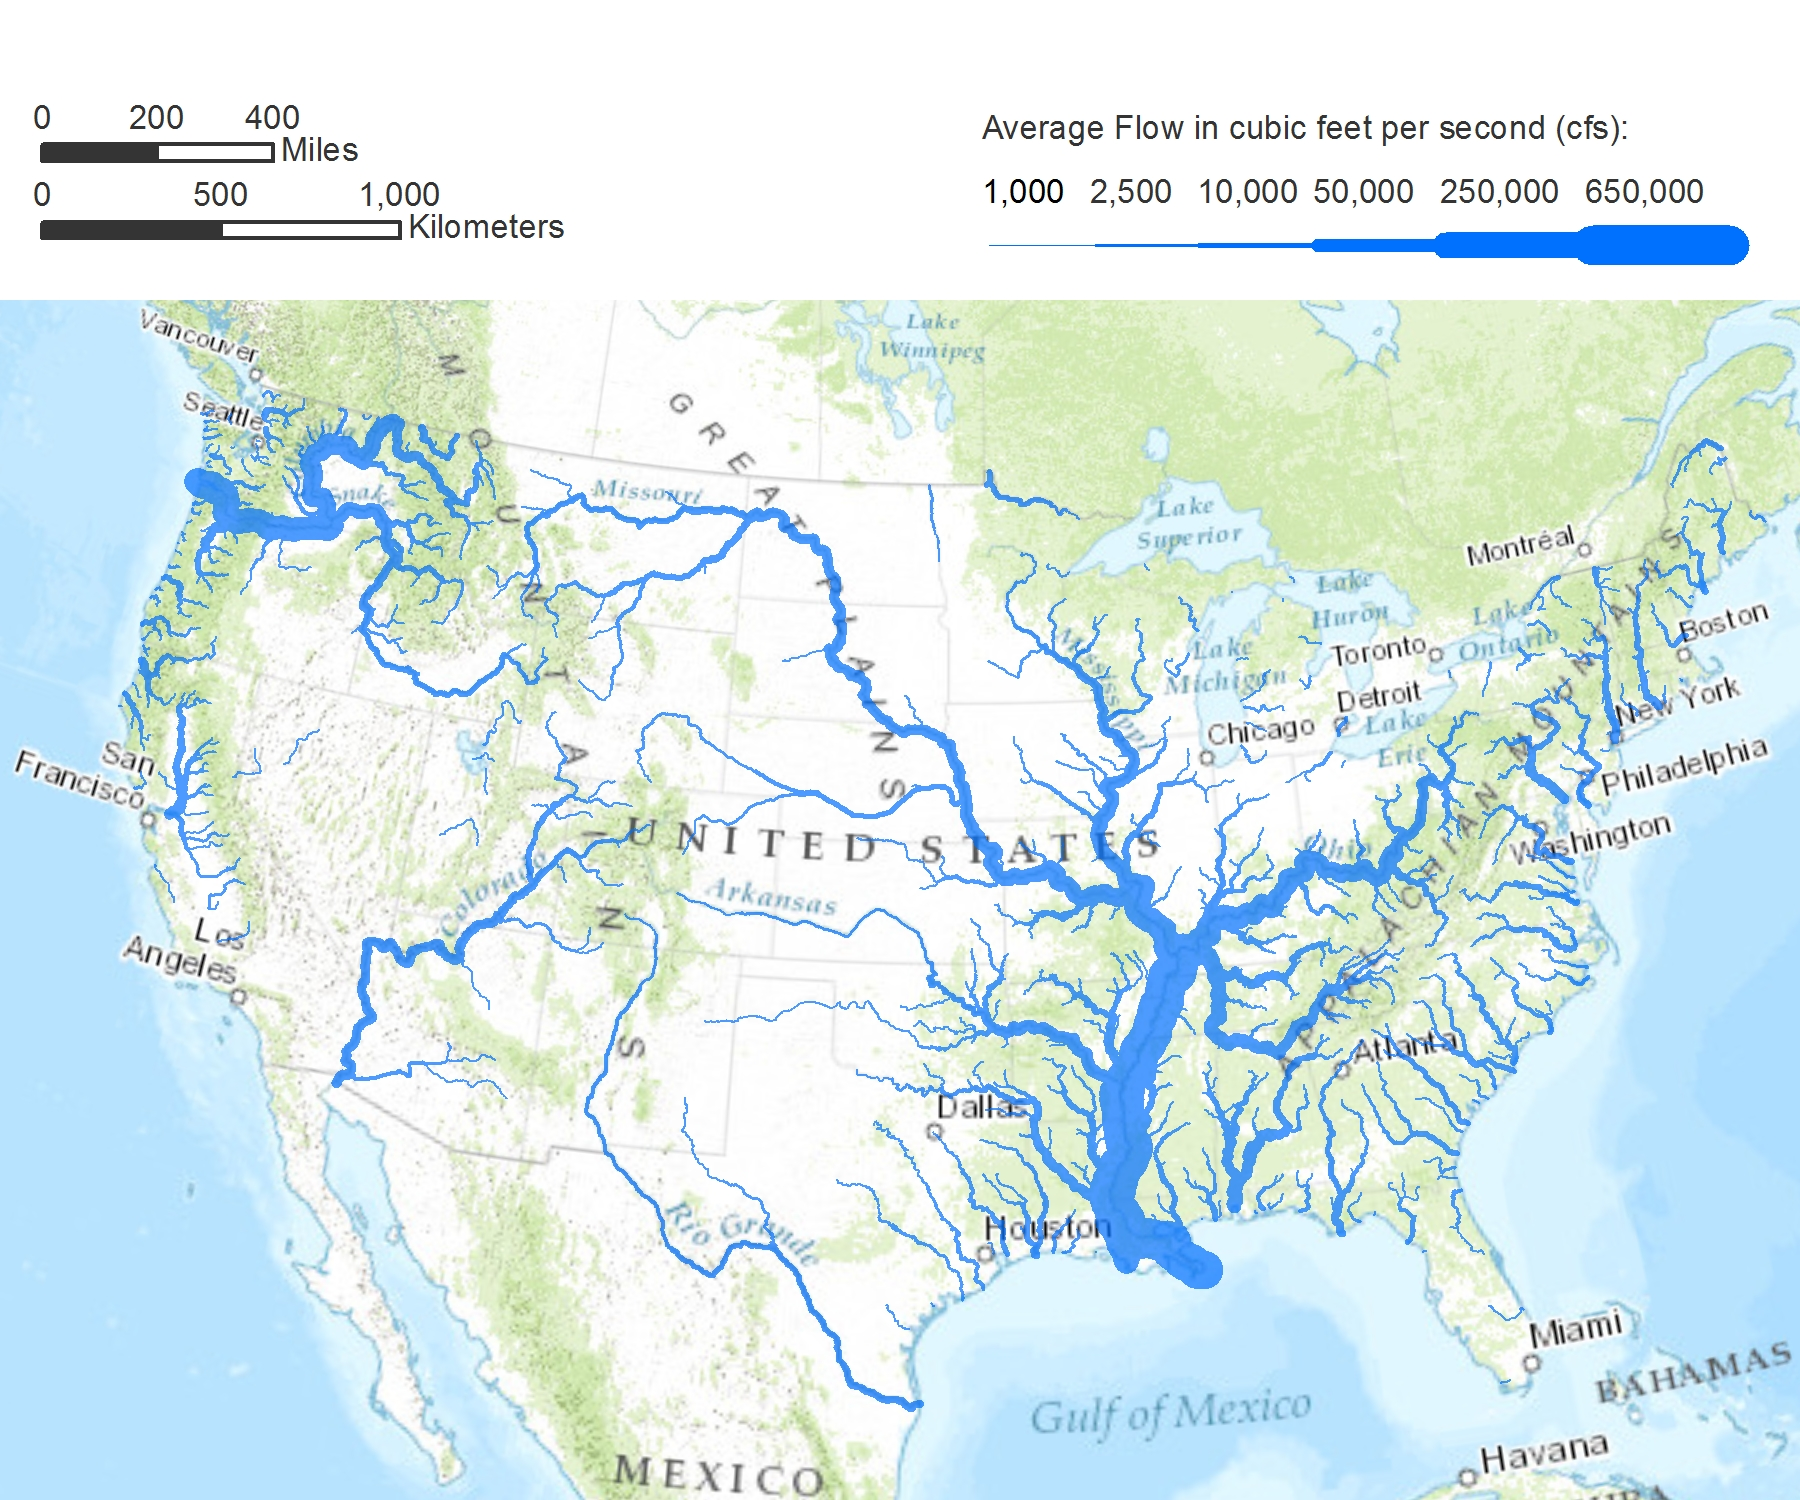 Western Us Rivers Map America's Rivers: A New Way of Seeing the Nation's Waters